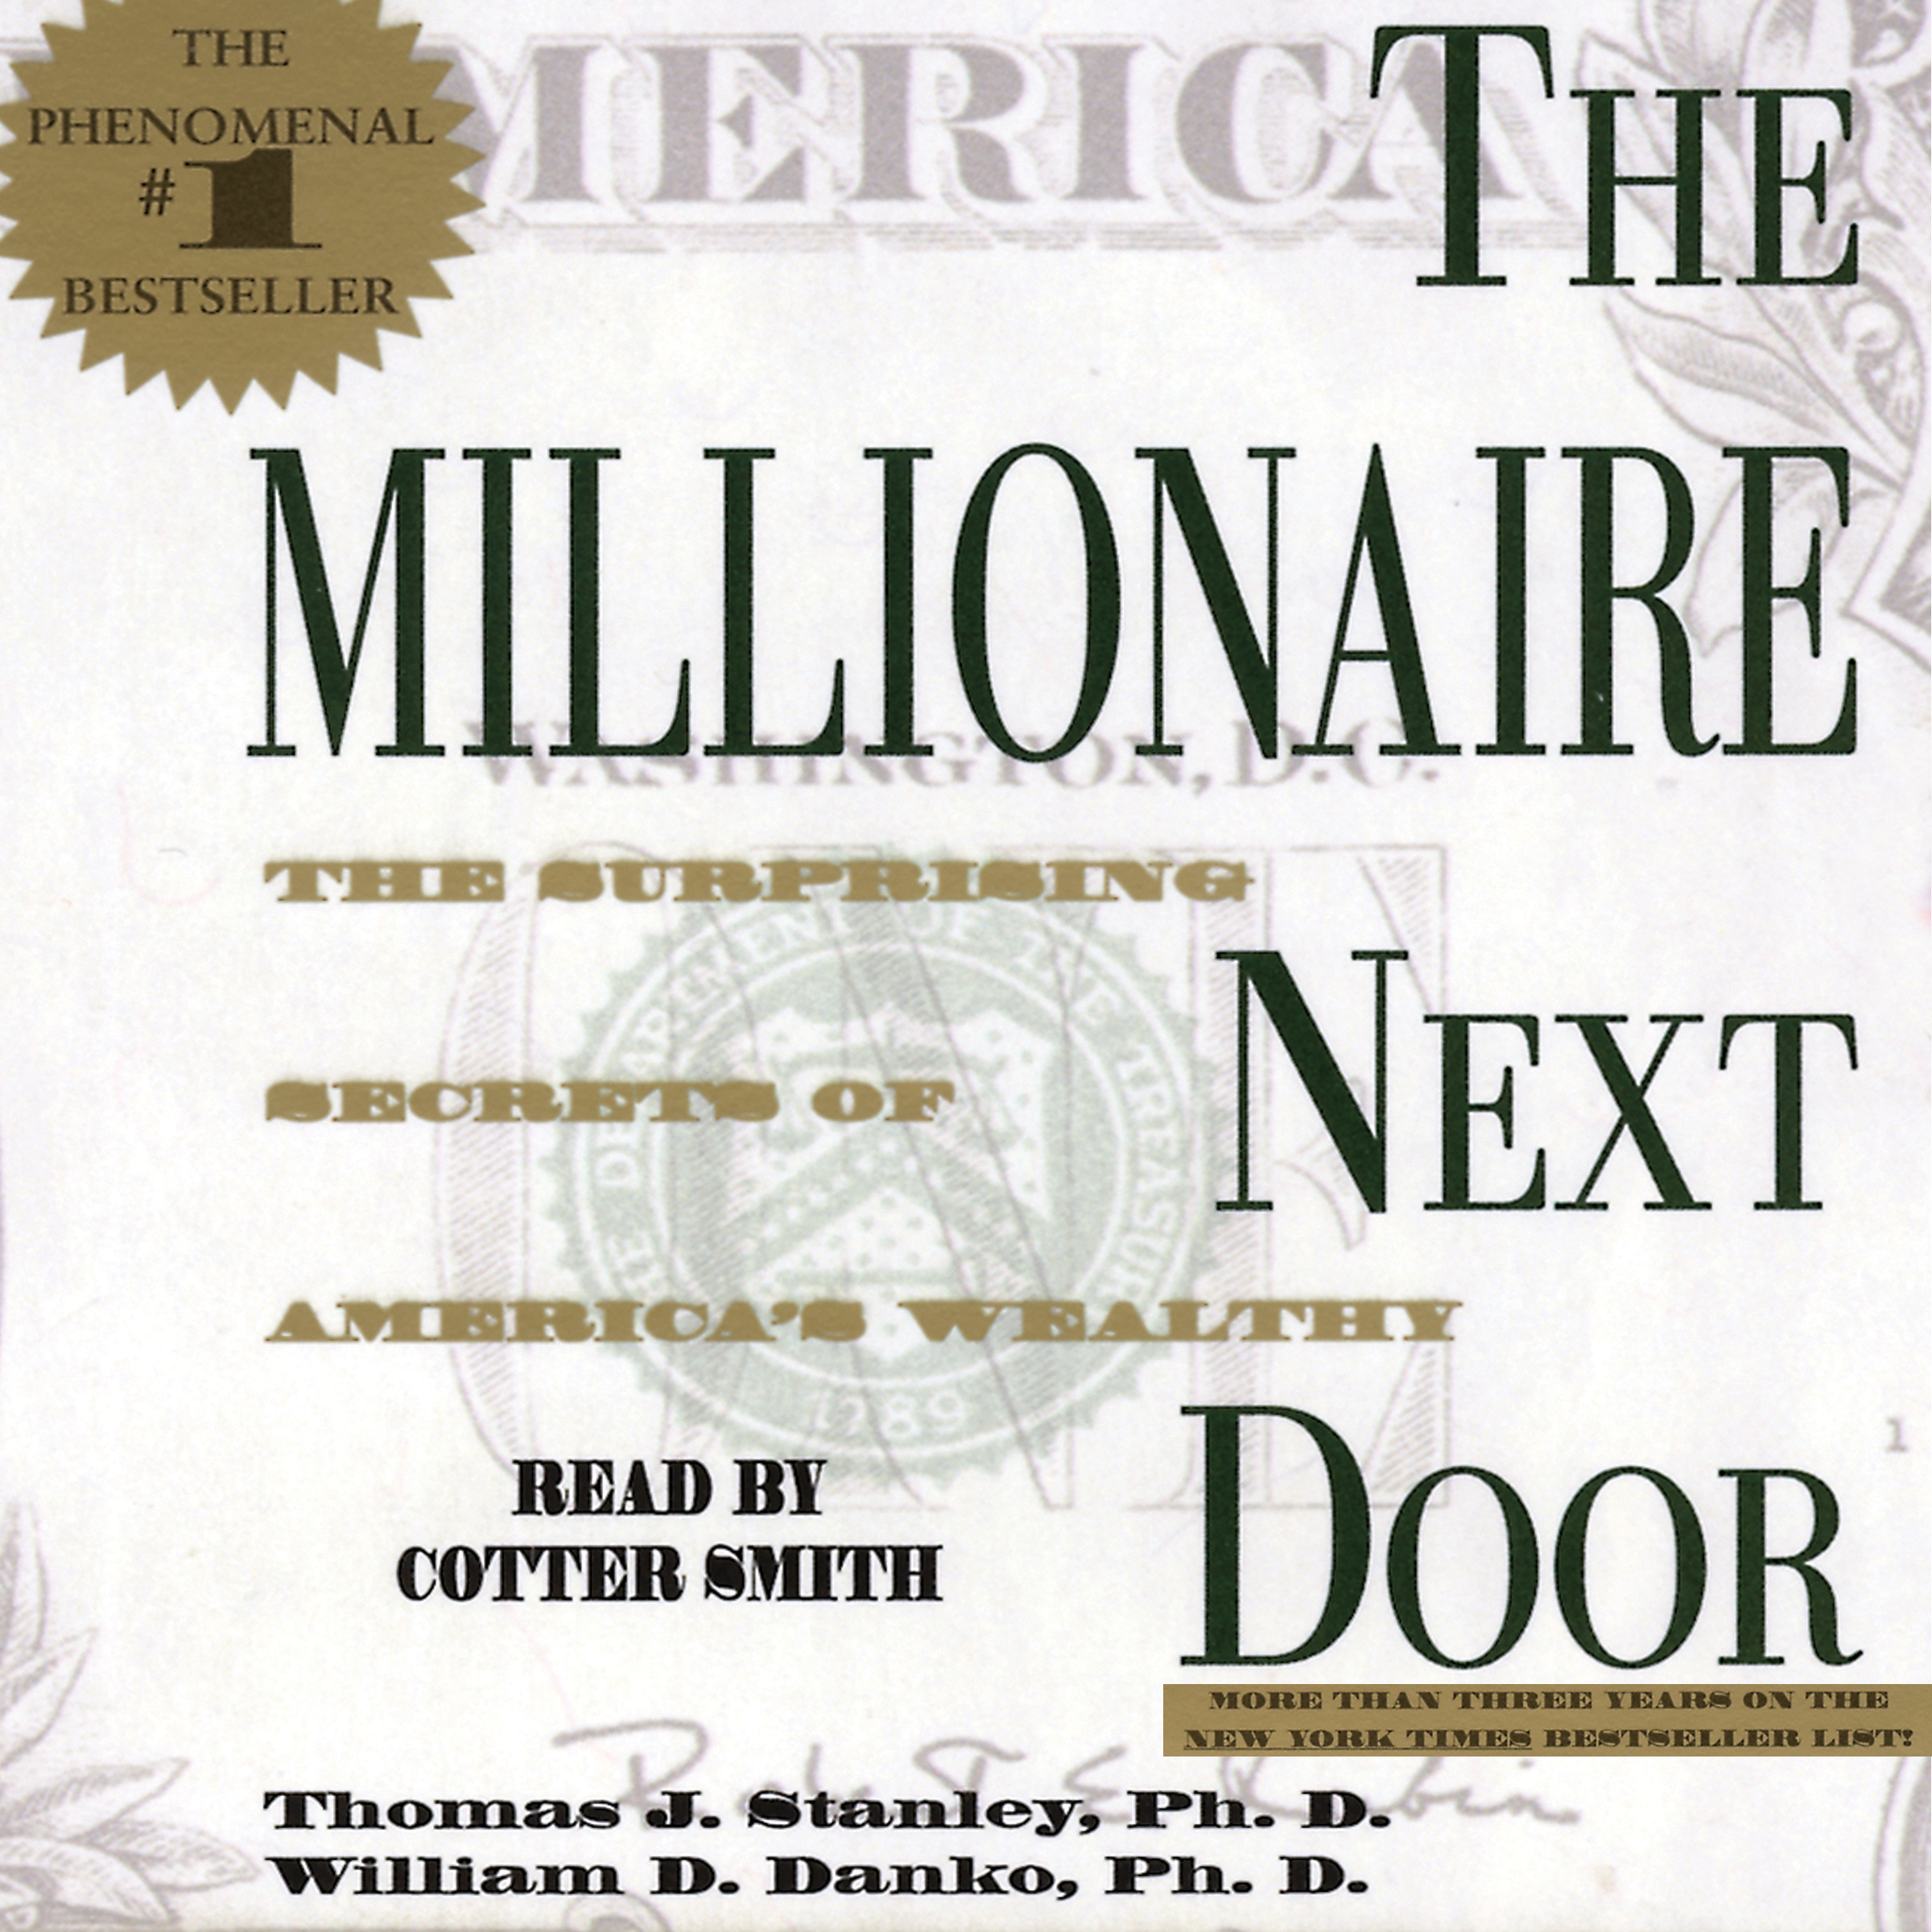 Book Cover Image (jpg): The Millionaire Next Door. Unabridged Audio Download  9780743561273